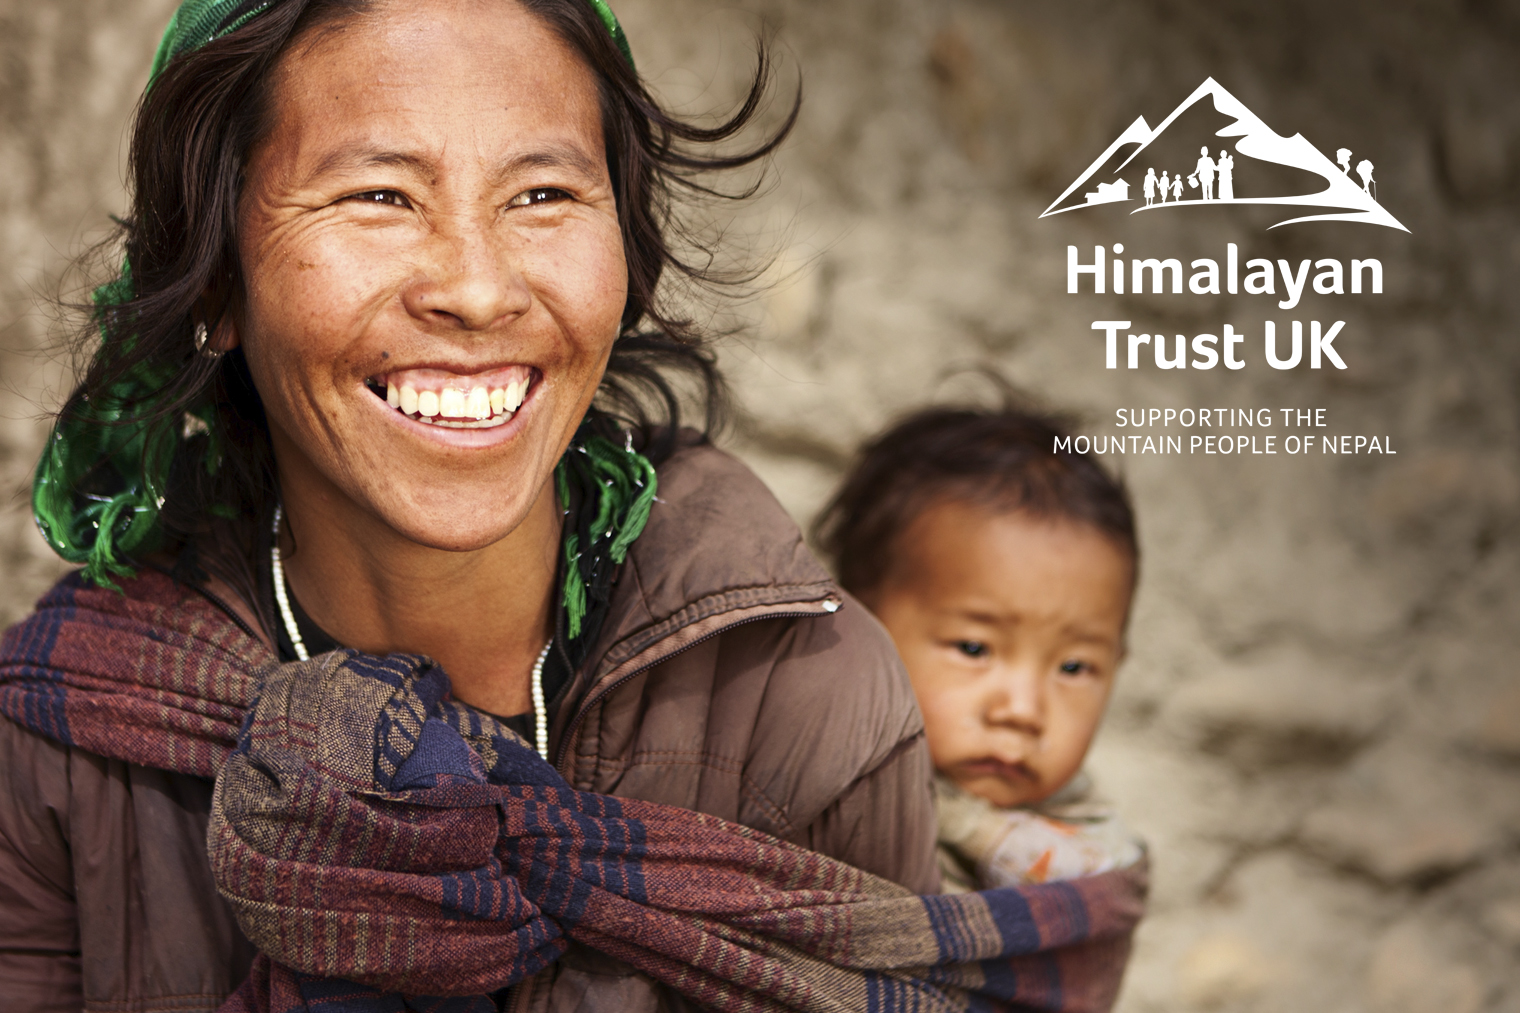 New logo for Himalayan Trust